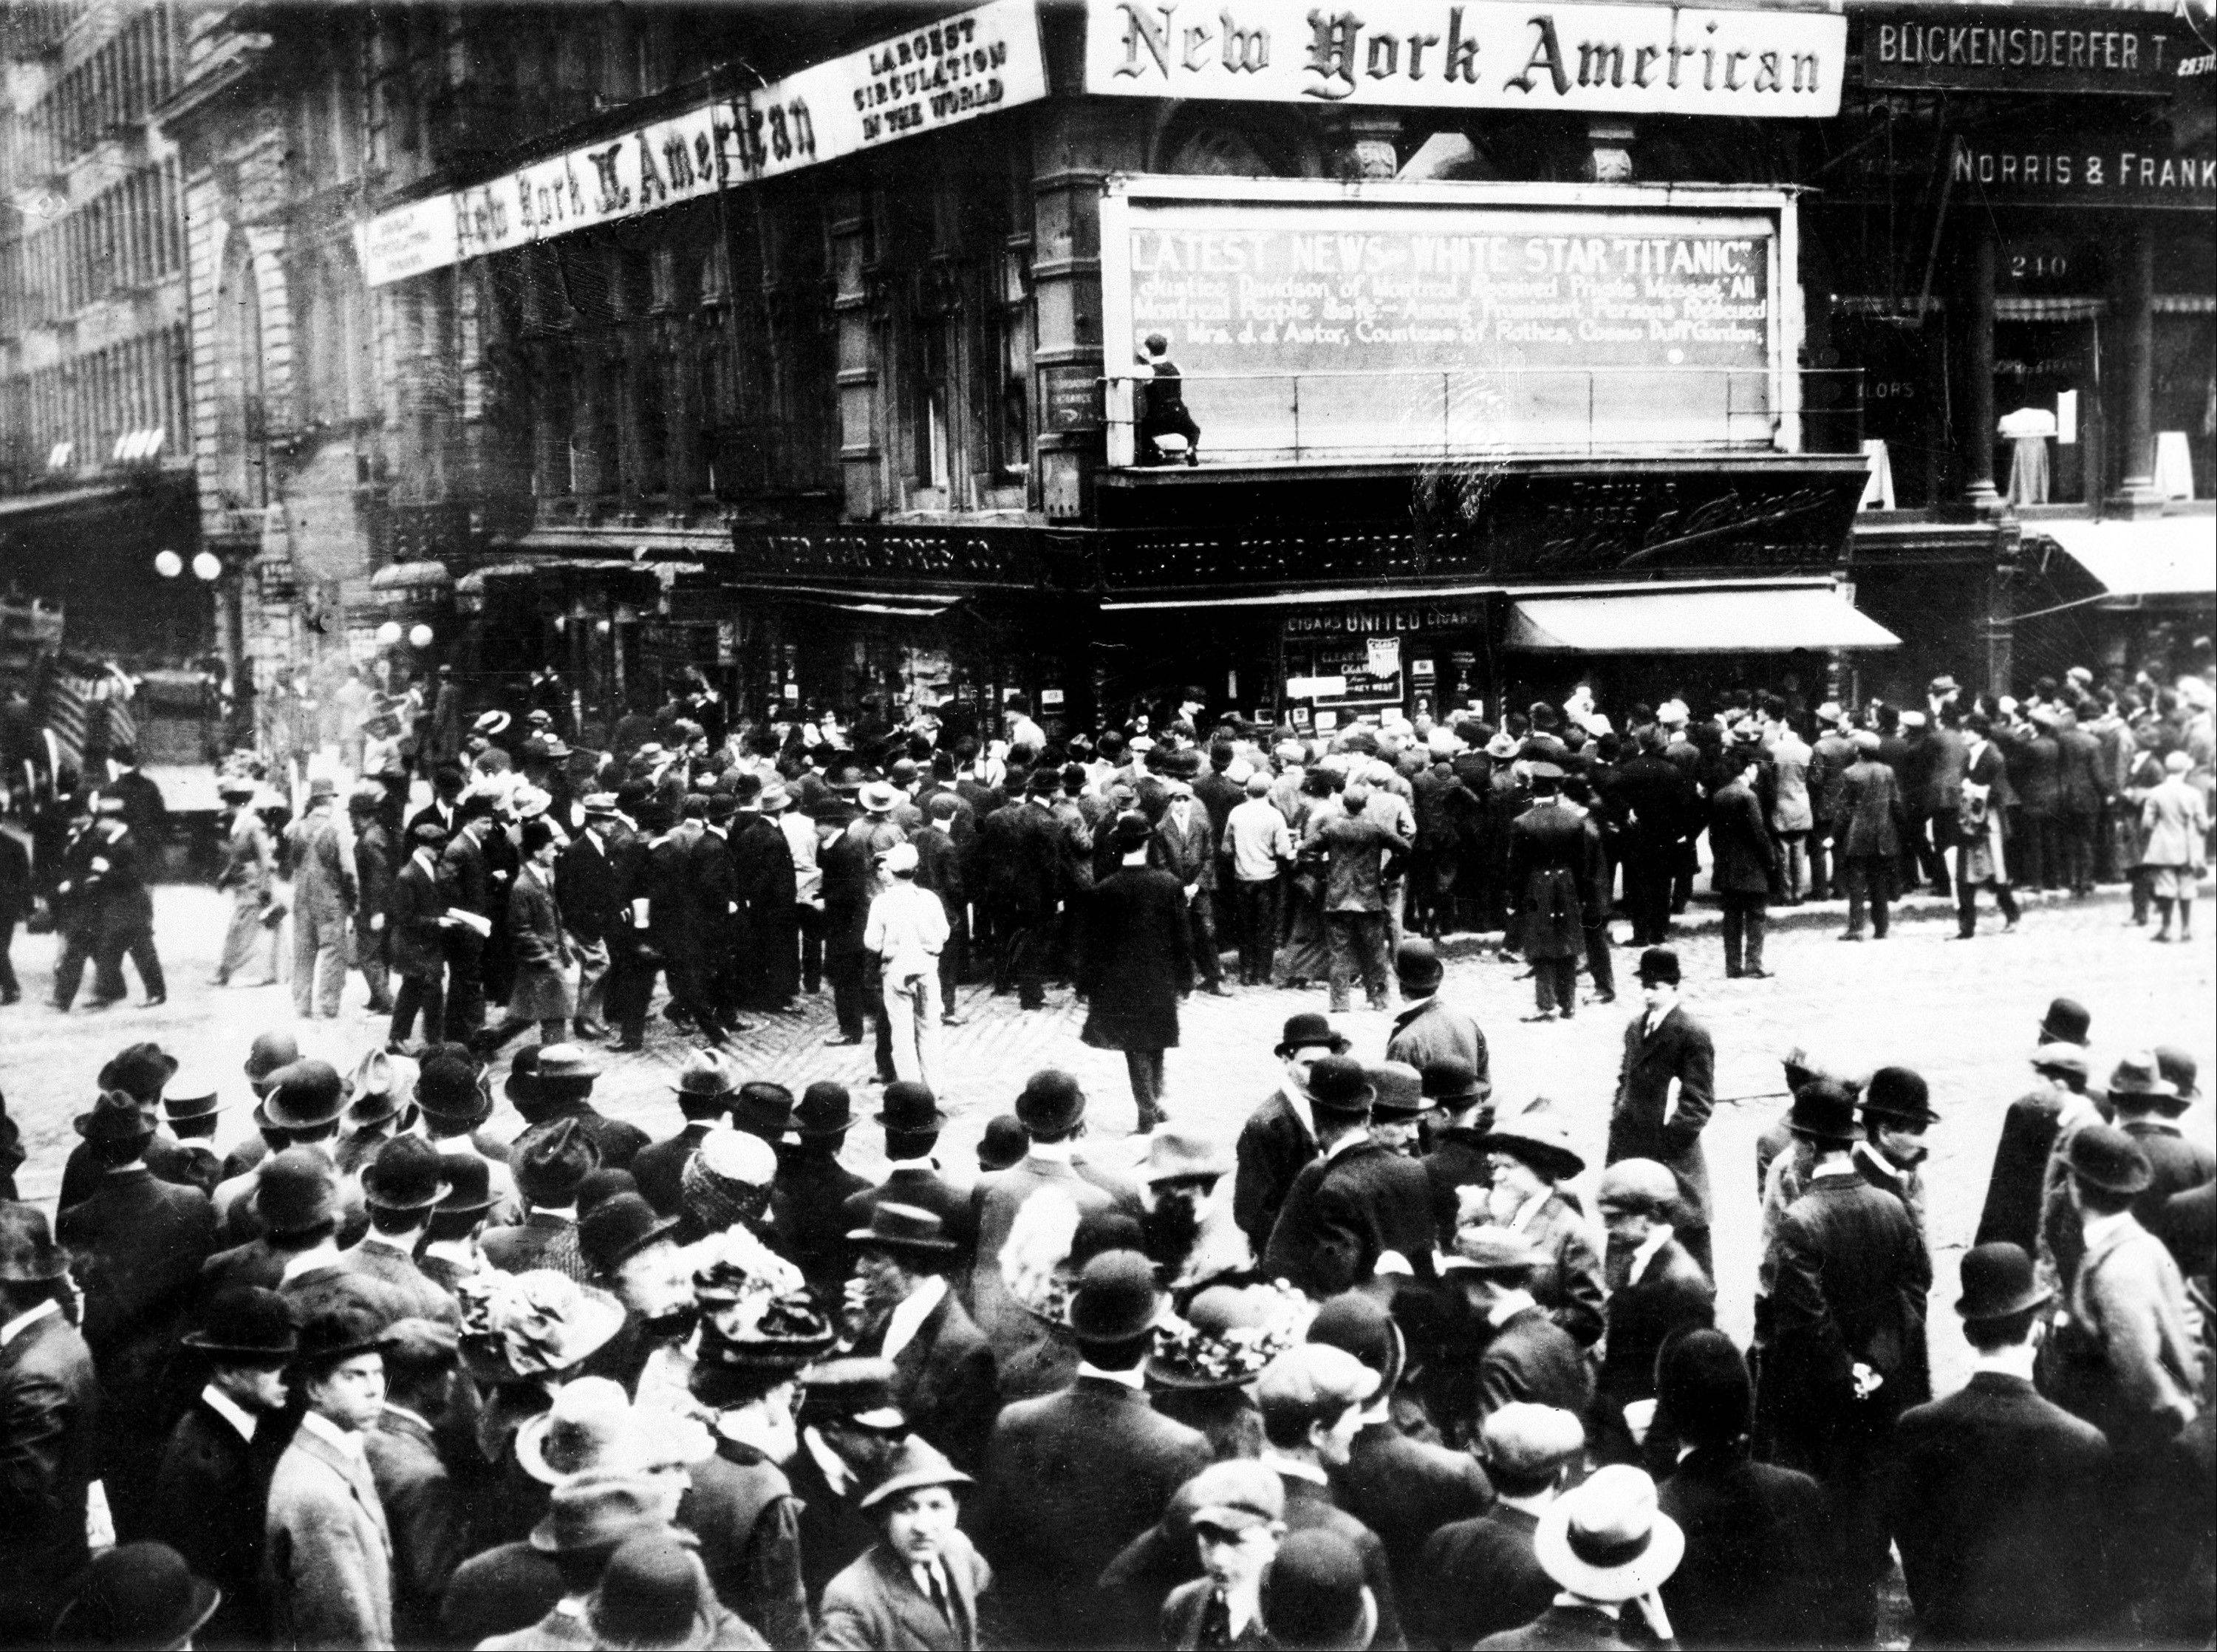 "Associated PressIn this April 1912 file photo, crowds gather around the bulletin board of the New York American newspaper in New York, where the names of people rescued from the sinking Titanic are displayed. It was a news story that would change the news. From the moment that a brief Associated Press dispatch relayed the wireless distress call _ ""Titanic ... reported having struck an iceberg. The steamer said that immediate assistance was required"" _ reporters and editors scrambled. In ways that seem familiar today, they adapted a dawning newsgathering technology and organized saturation coverage and managed to cover what one authority calls ""the first really, truly international news event where anyone anywhere in the world could pick up a newspaper and read about it."""